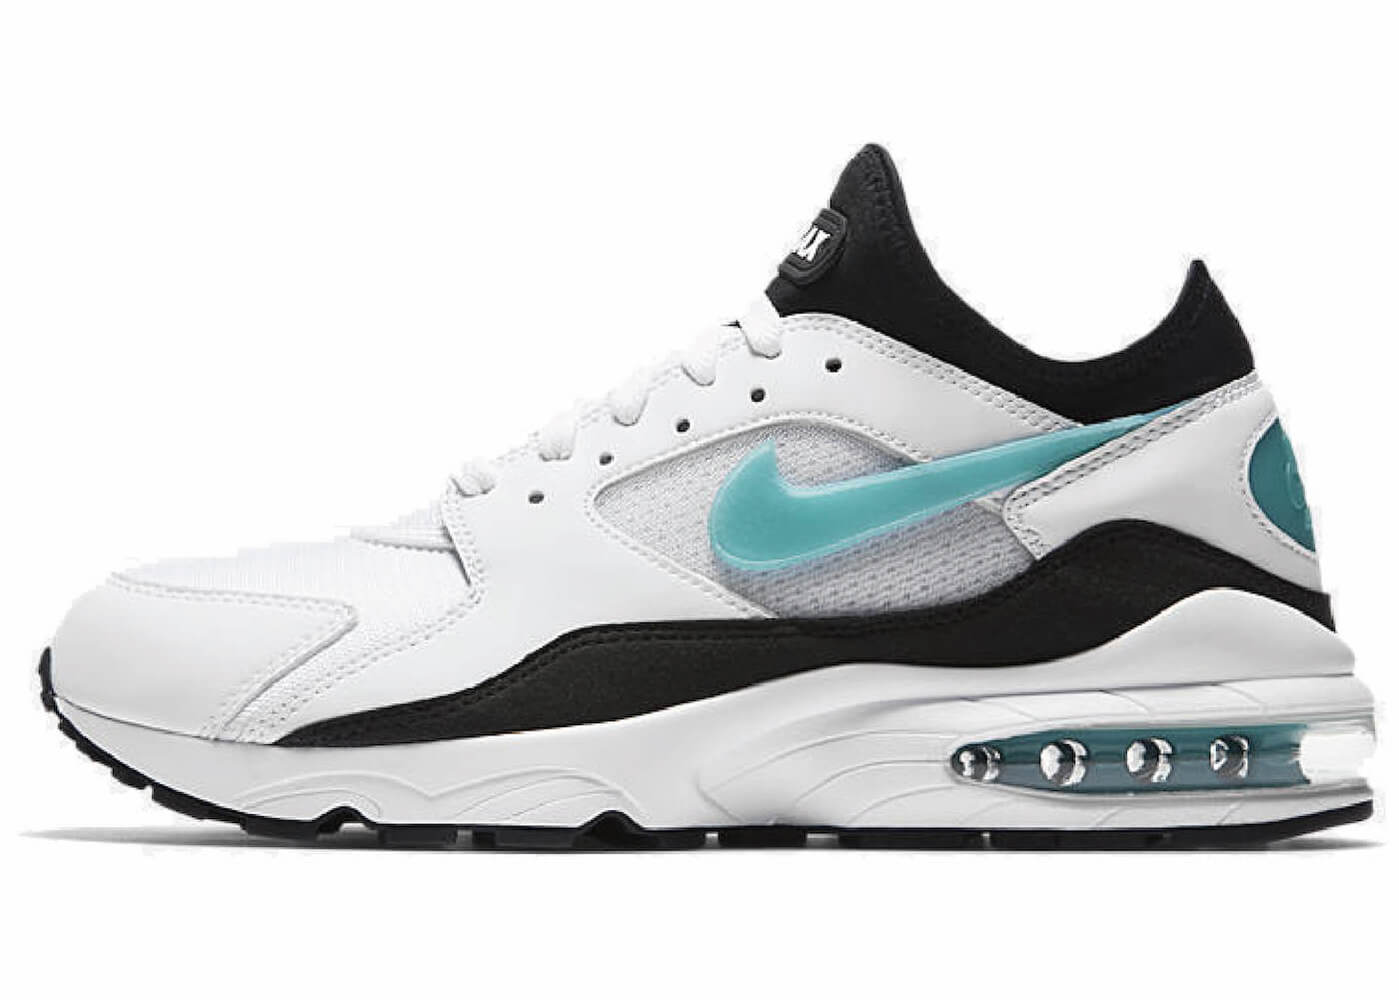 AIR MAX 93 AUDACIOUS AIR WHITE/SPORTS TURQUOISE (2018)の写真